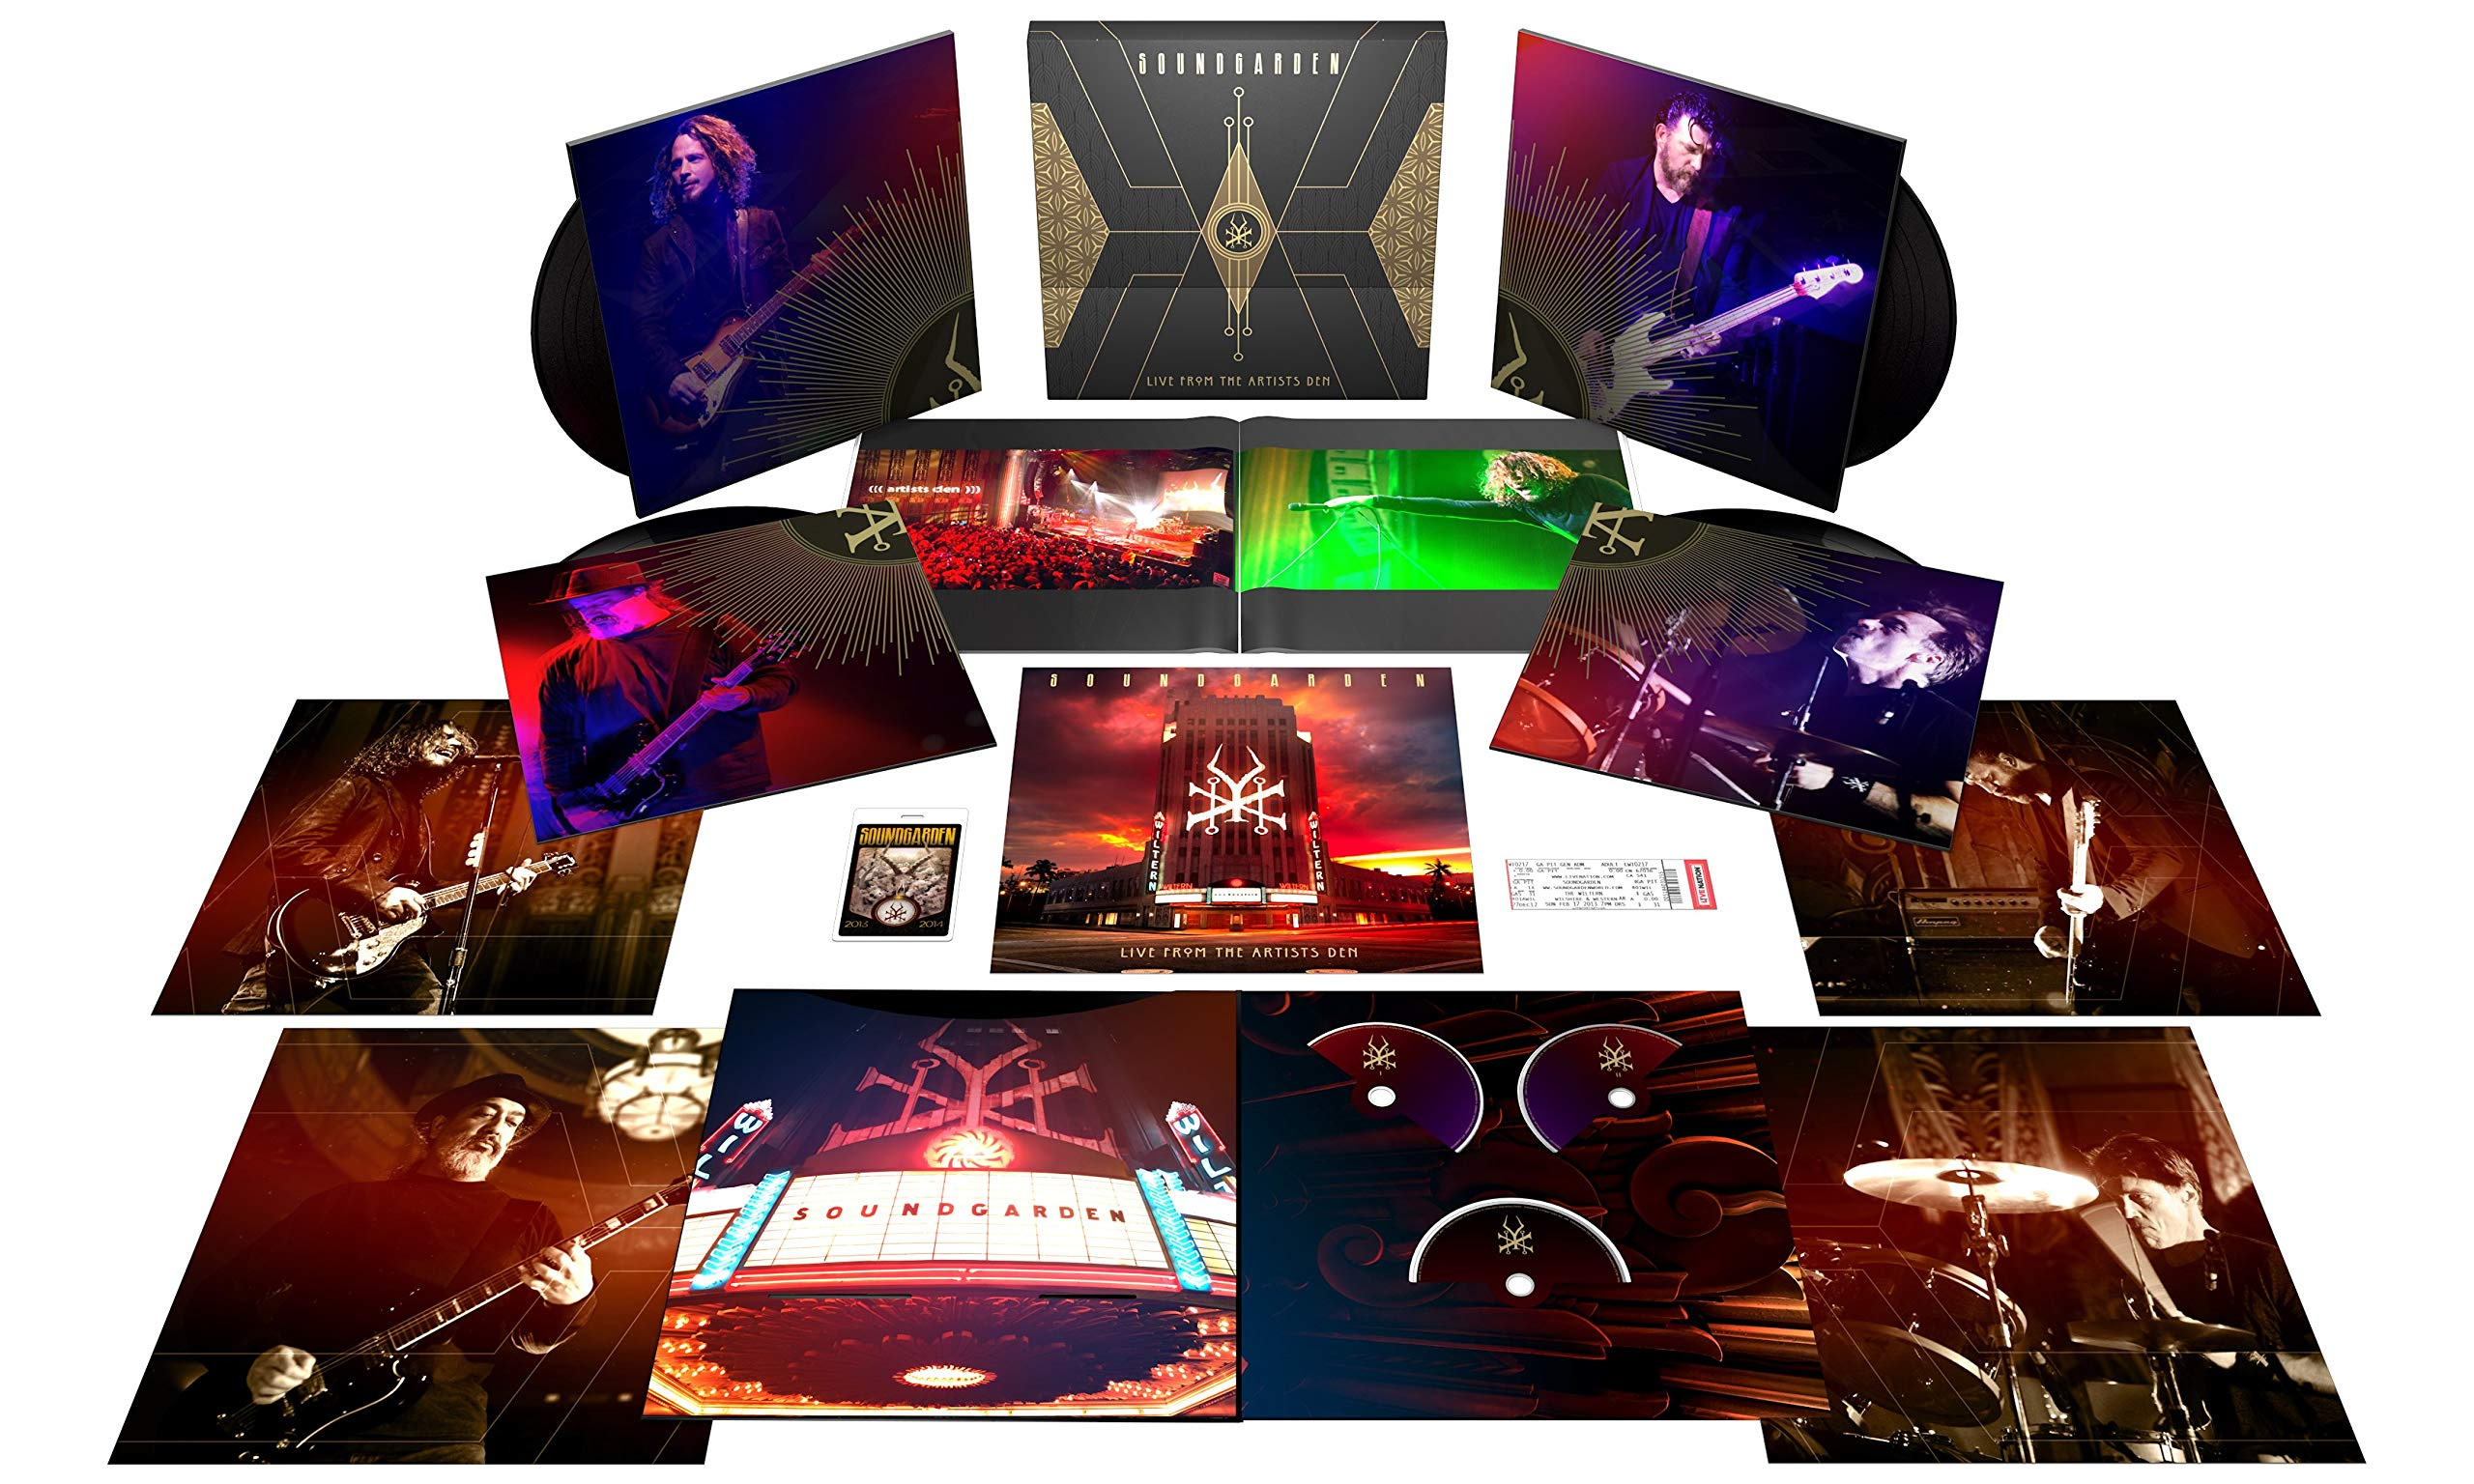 Live From The Artists Den [4 LP/2 CD/Blu-ray Super Deluxe Edition]